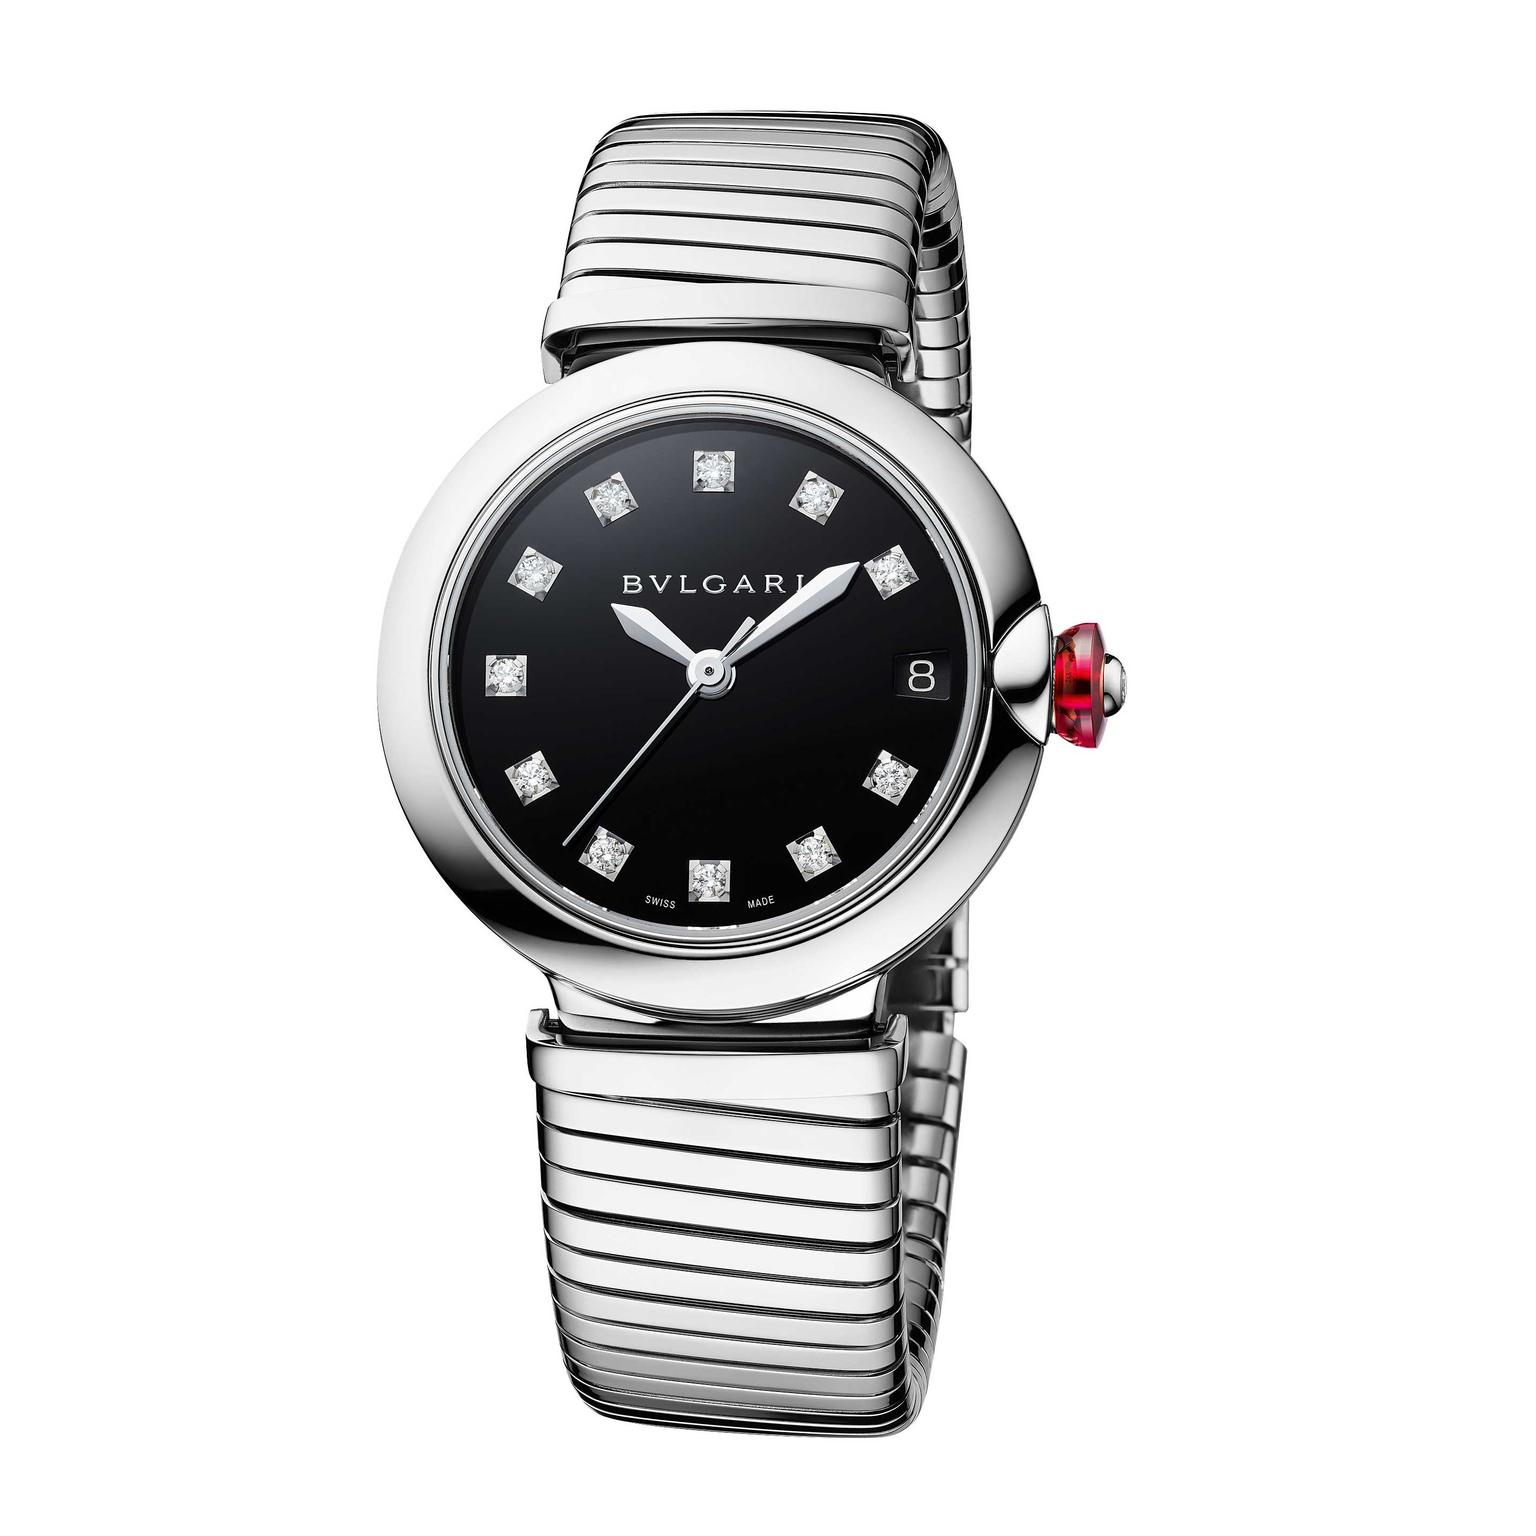 Bulgari Lvcea Tubogas 33mm stainless steel automatic women's watch 2018